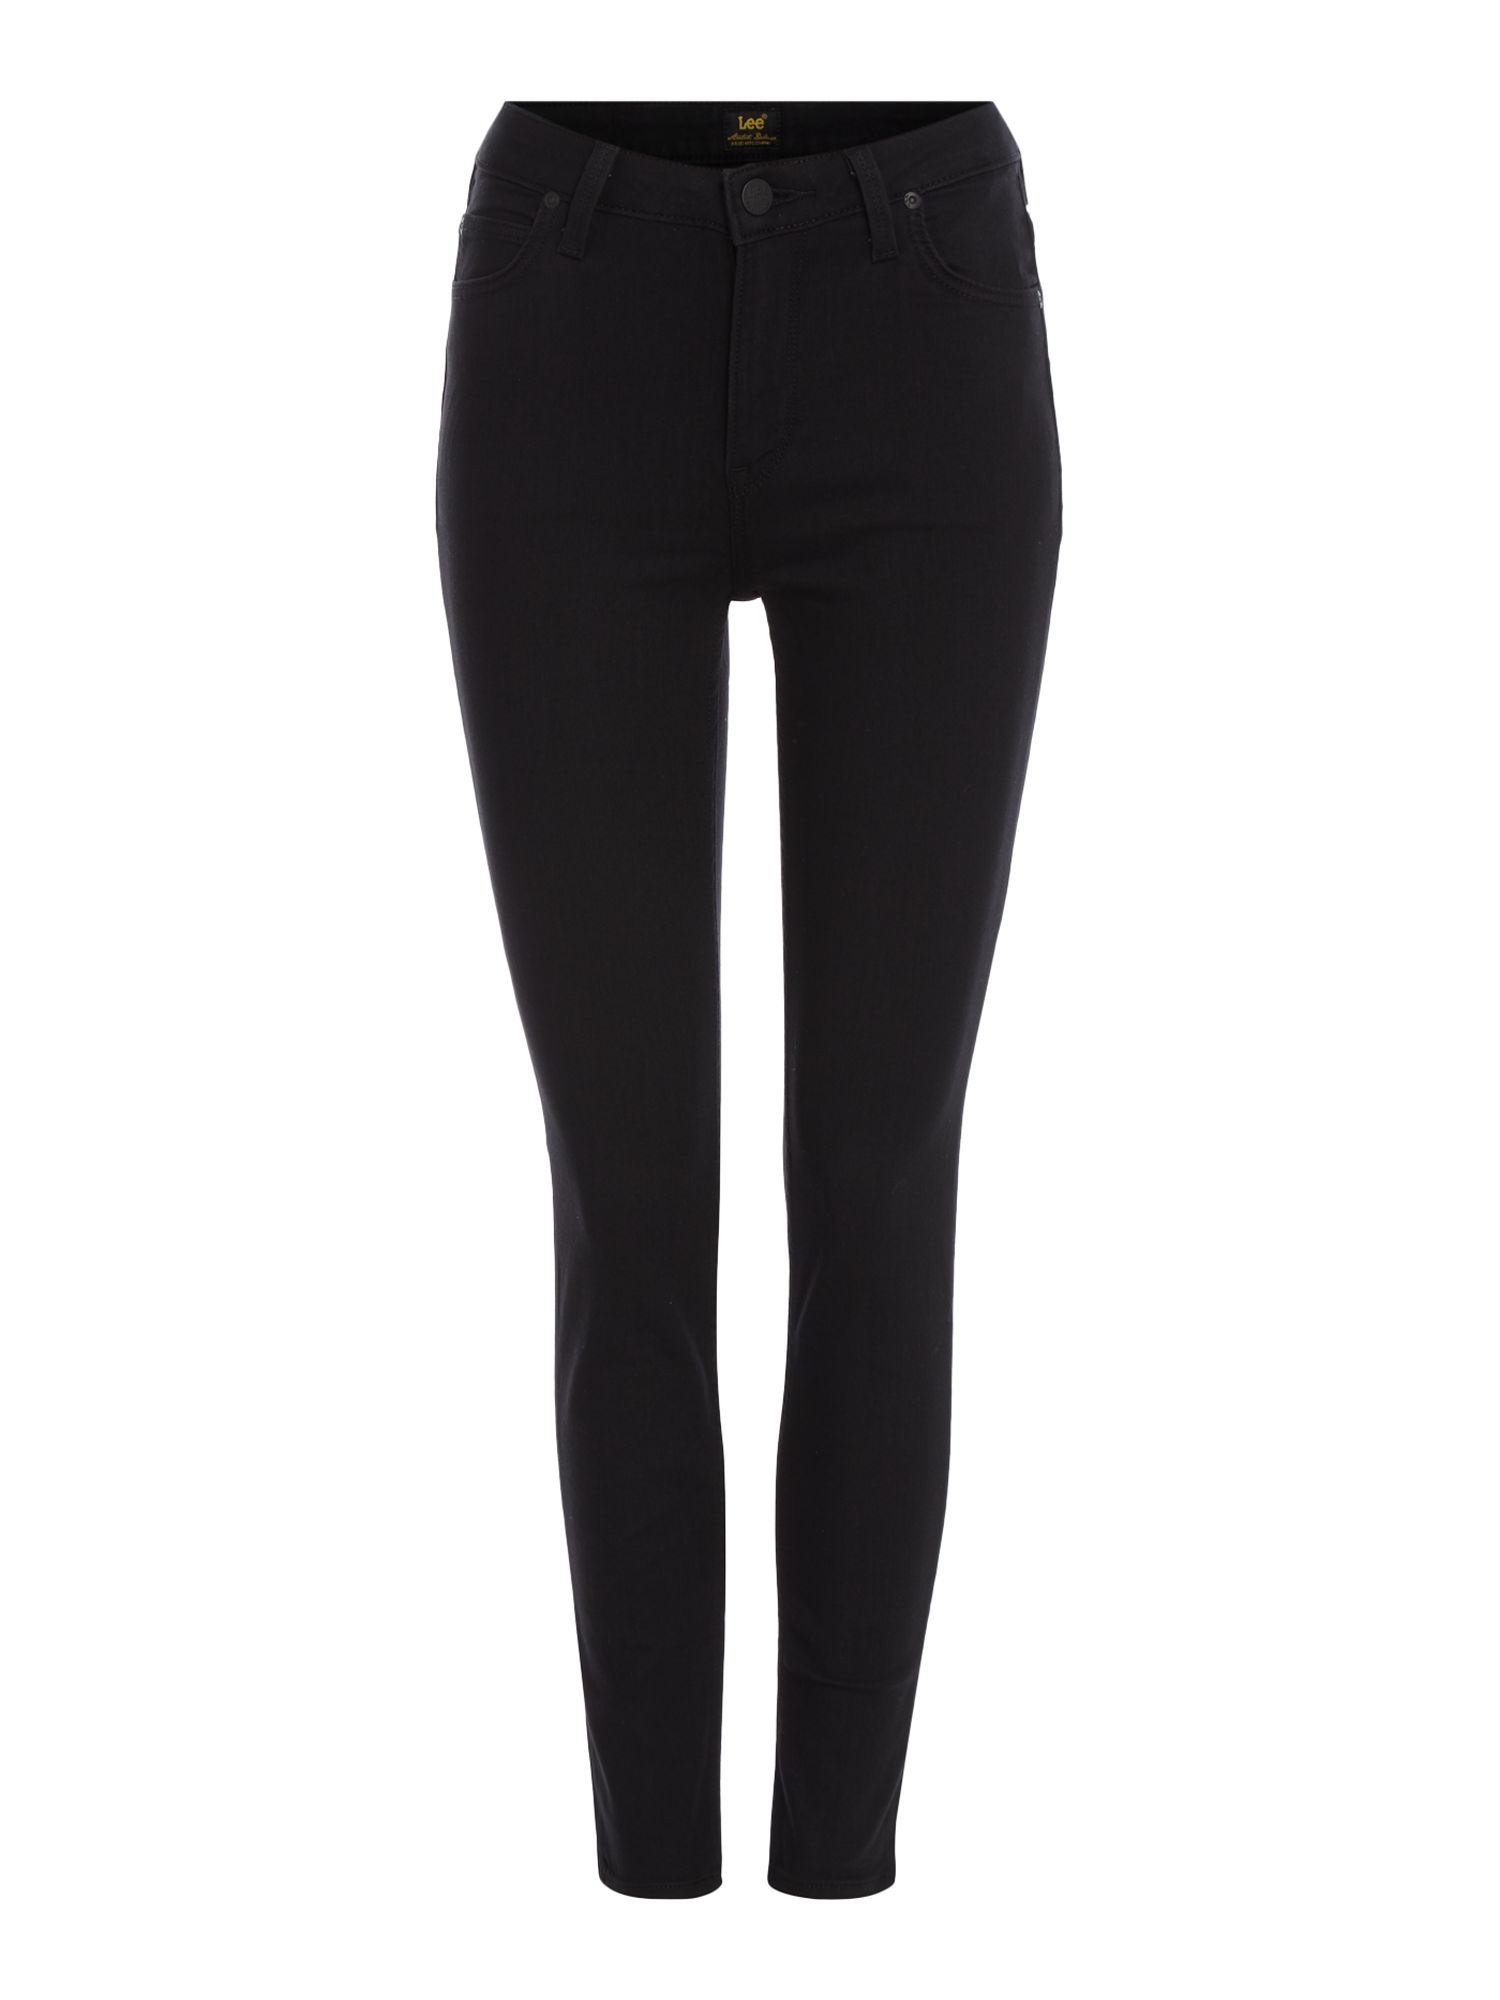 Scarlett High Waisted Jeans In Black Rinse, Black